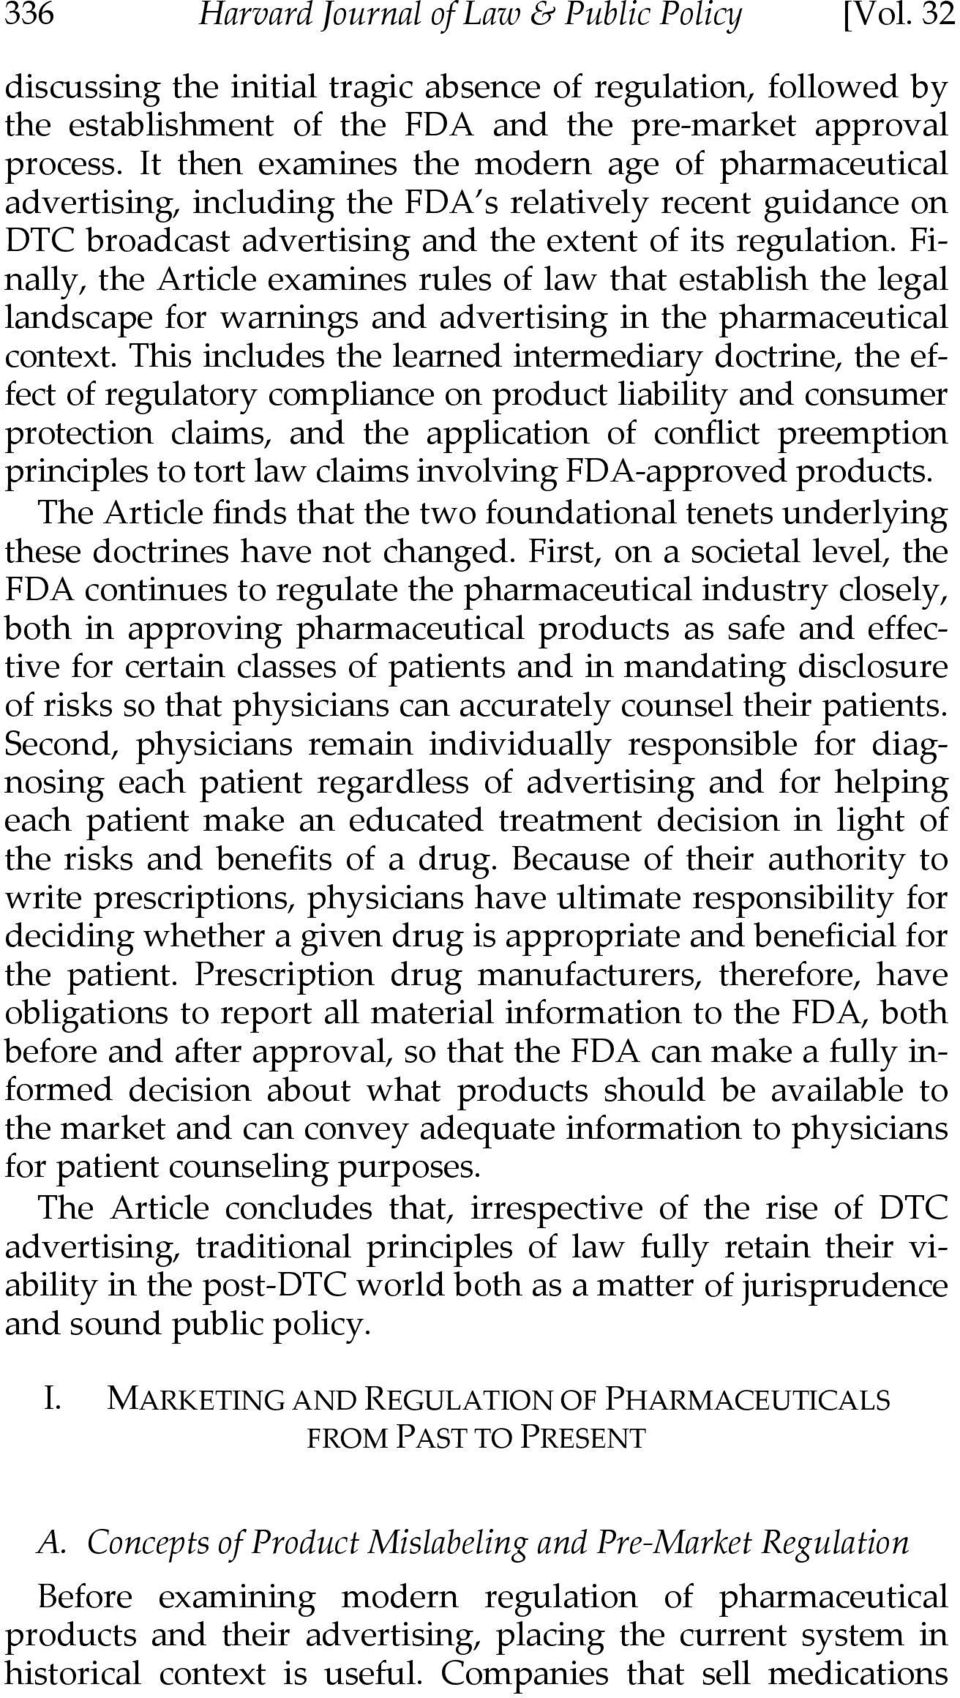 the learned intermediary doctrine and the pharmaceutical companies essay As in tyree, the judge was persuaded that the learned intermediary doctrine was applicable because (1) the case involved a medical device, rather than a prescription medication the west virginia high court may come around to the idea that pharmaceutical companies.